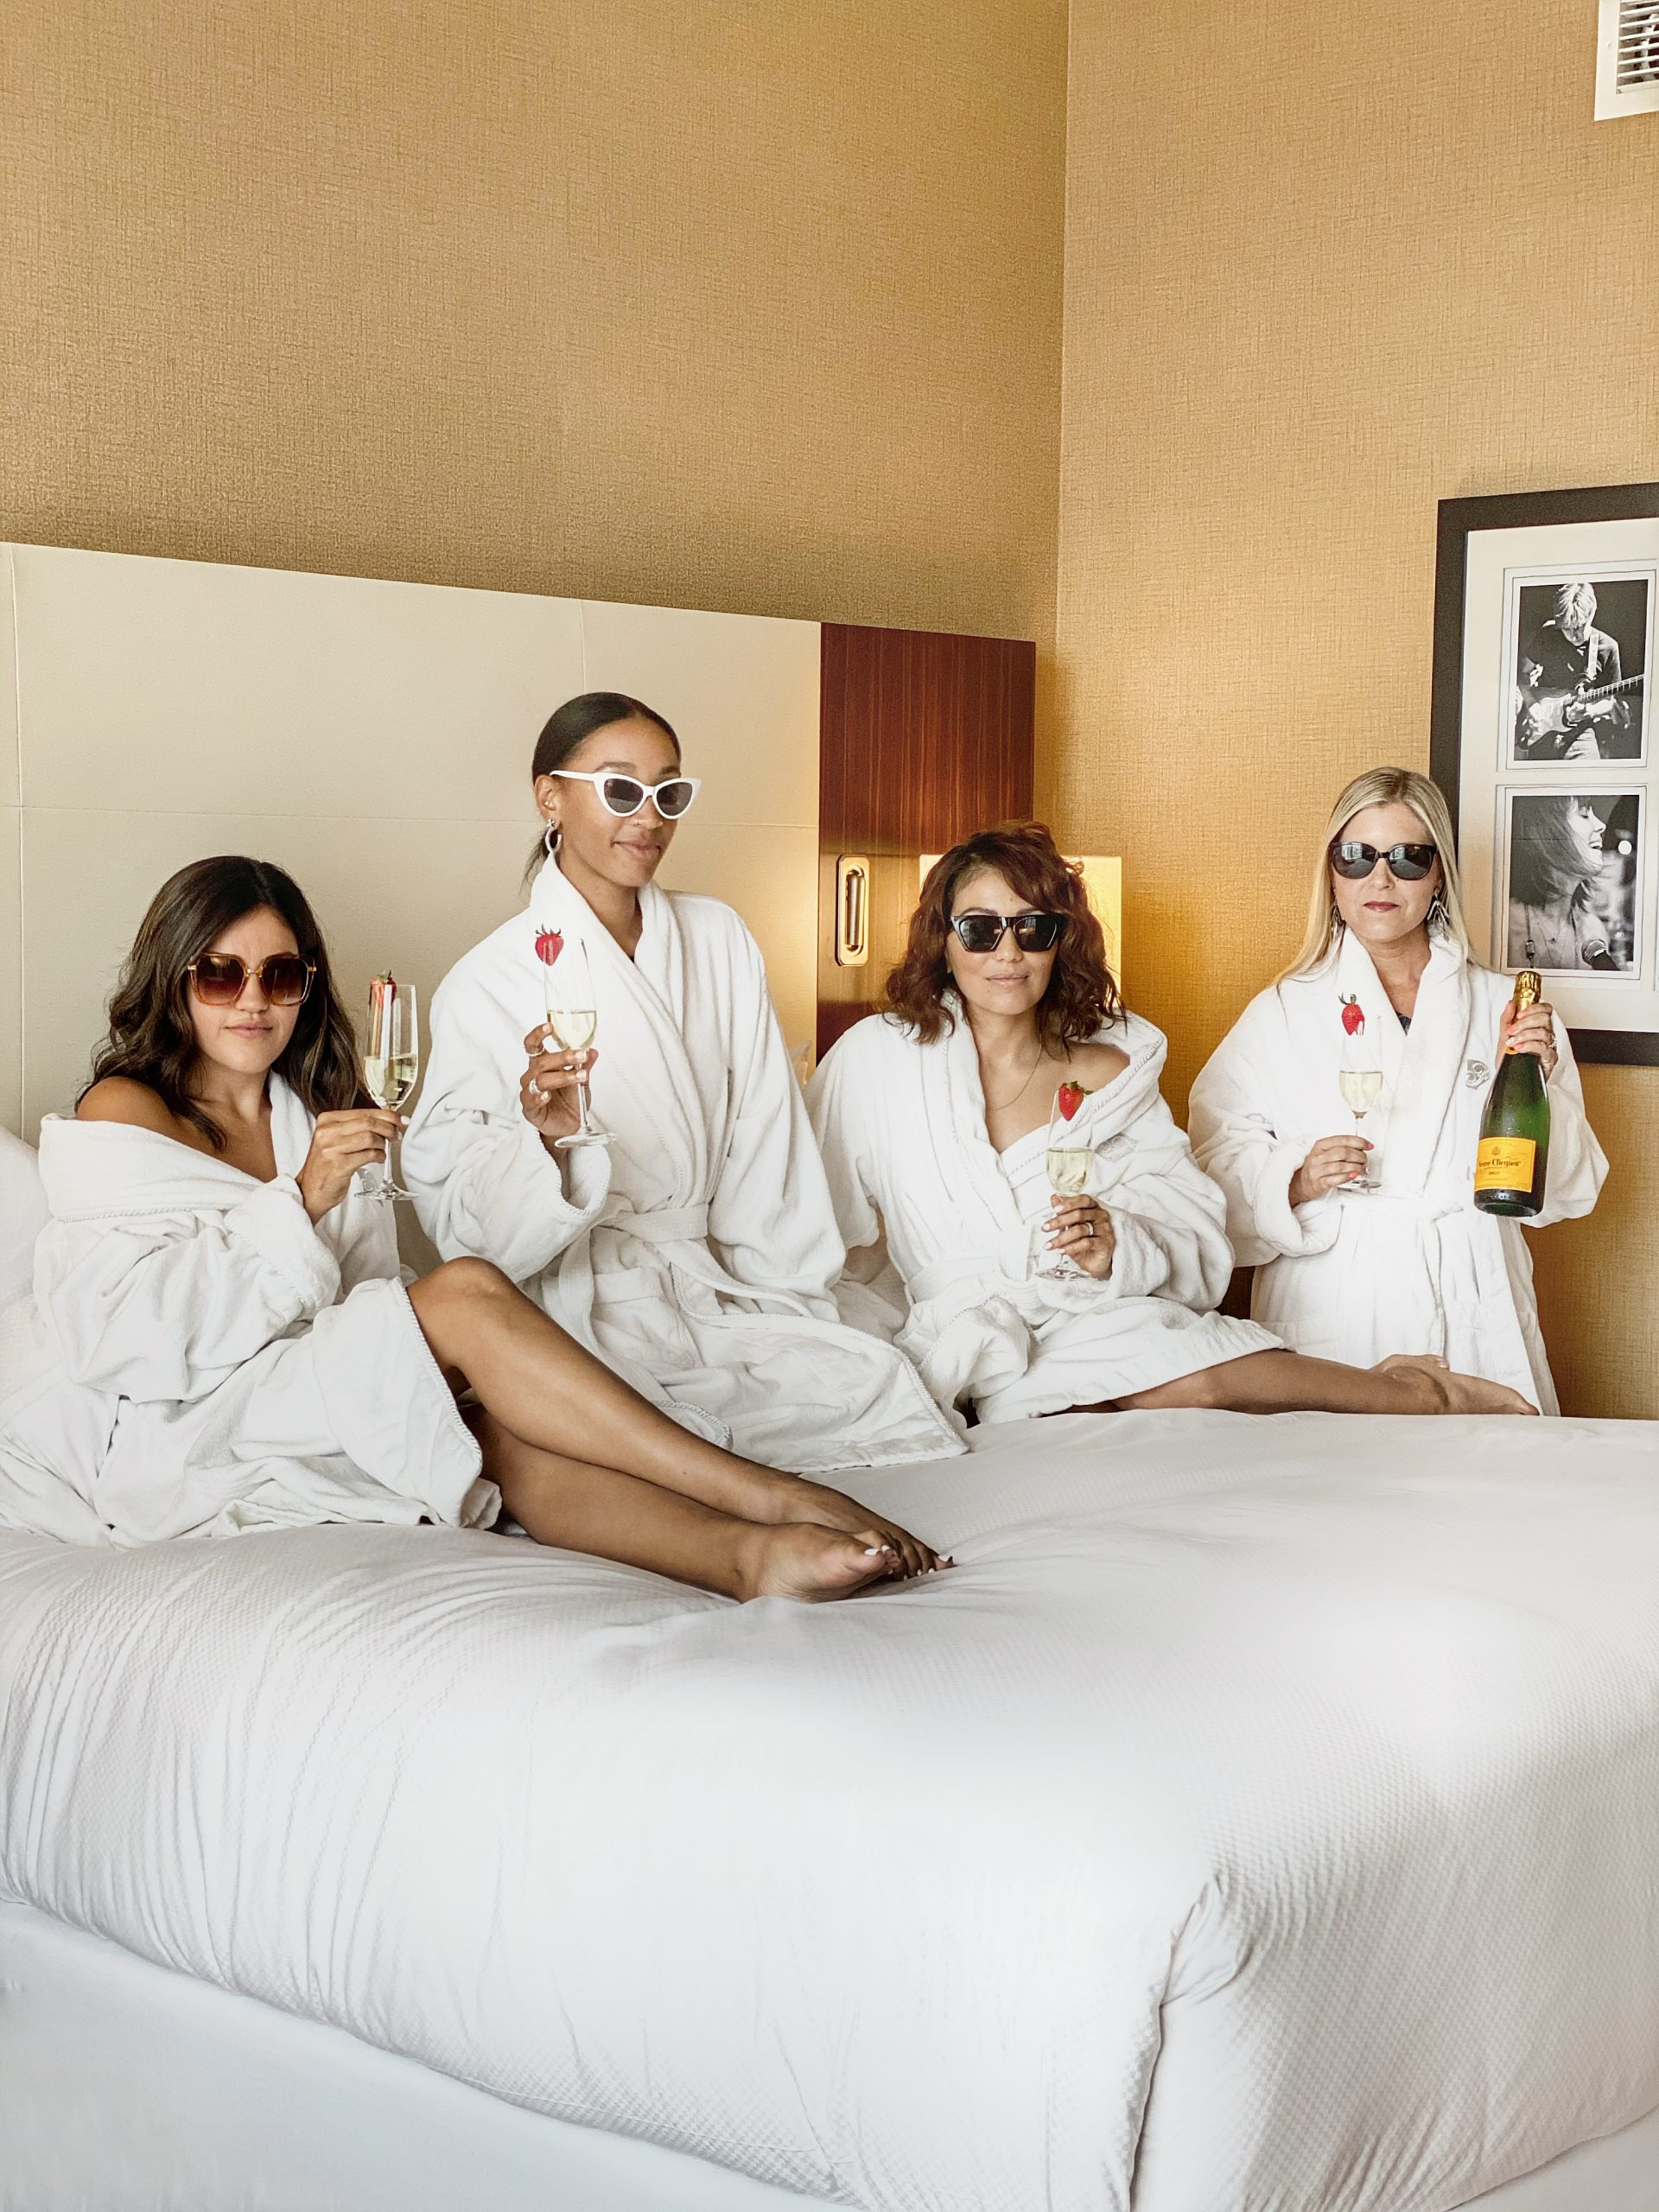 fairmont austin bachelorette party